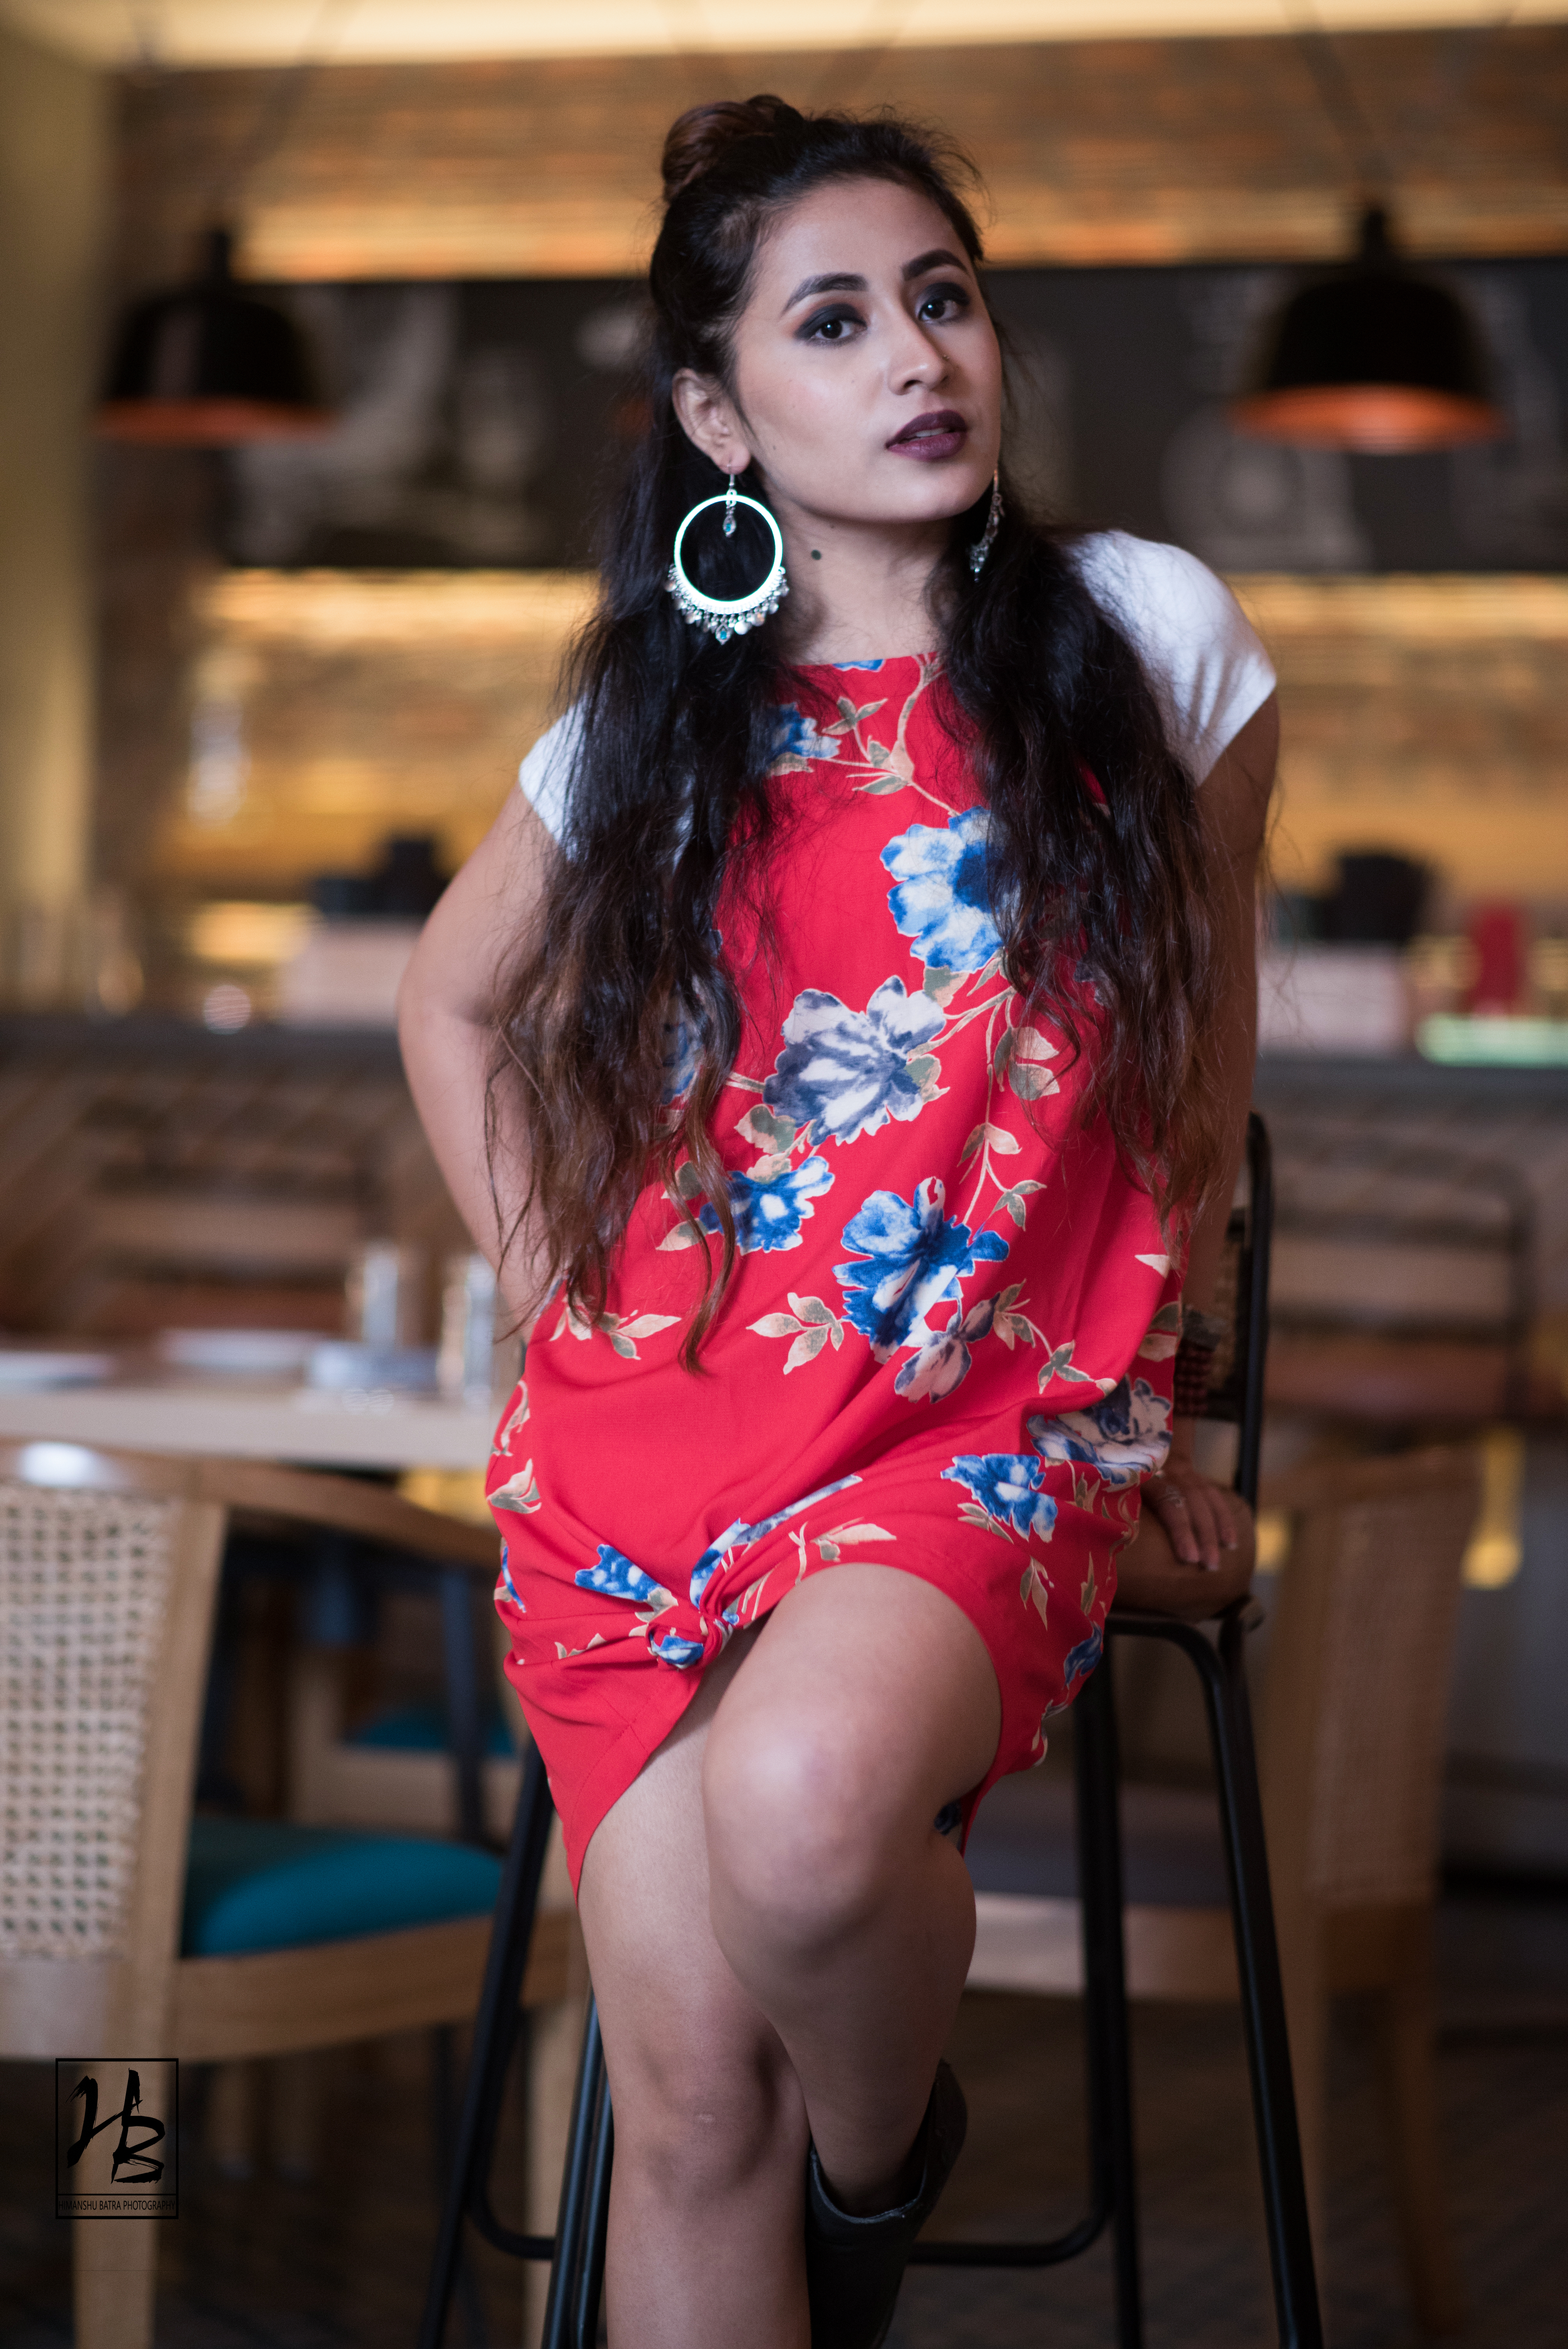 The fabric Fad in a floral dress